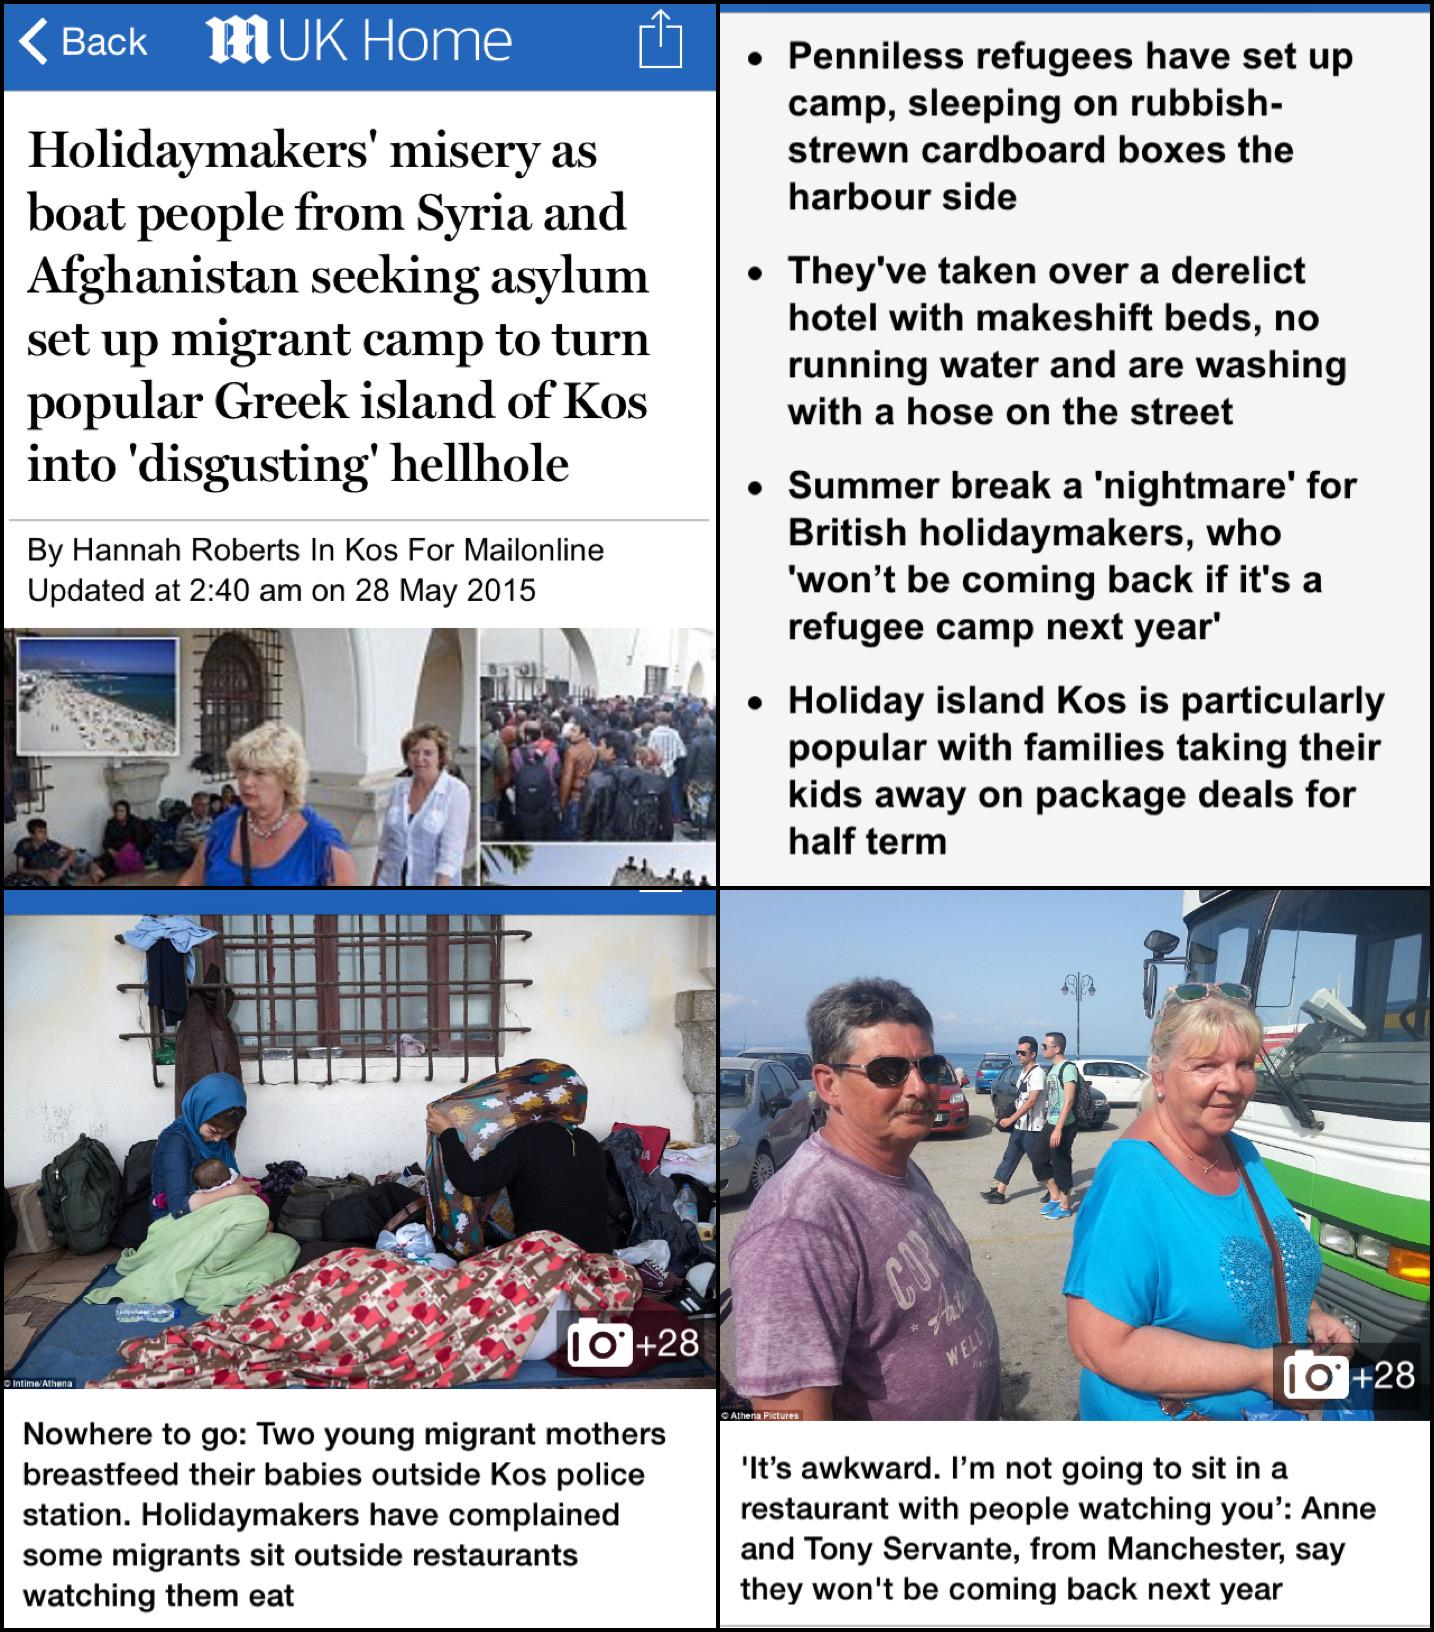 RT @DMReporter: BOO HOO: Ever sympathetic to the struggle of refugees, the Daily Mail reaches new levels of care and compassion… http://t.c…